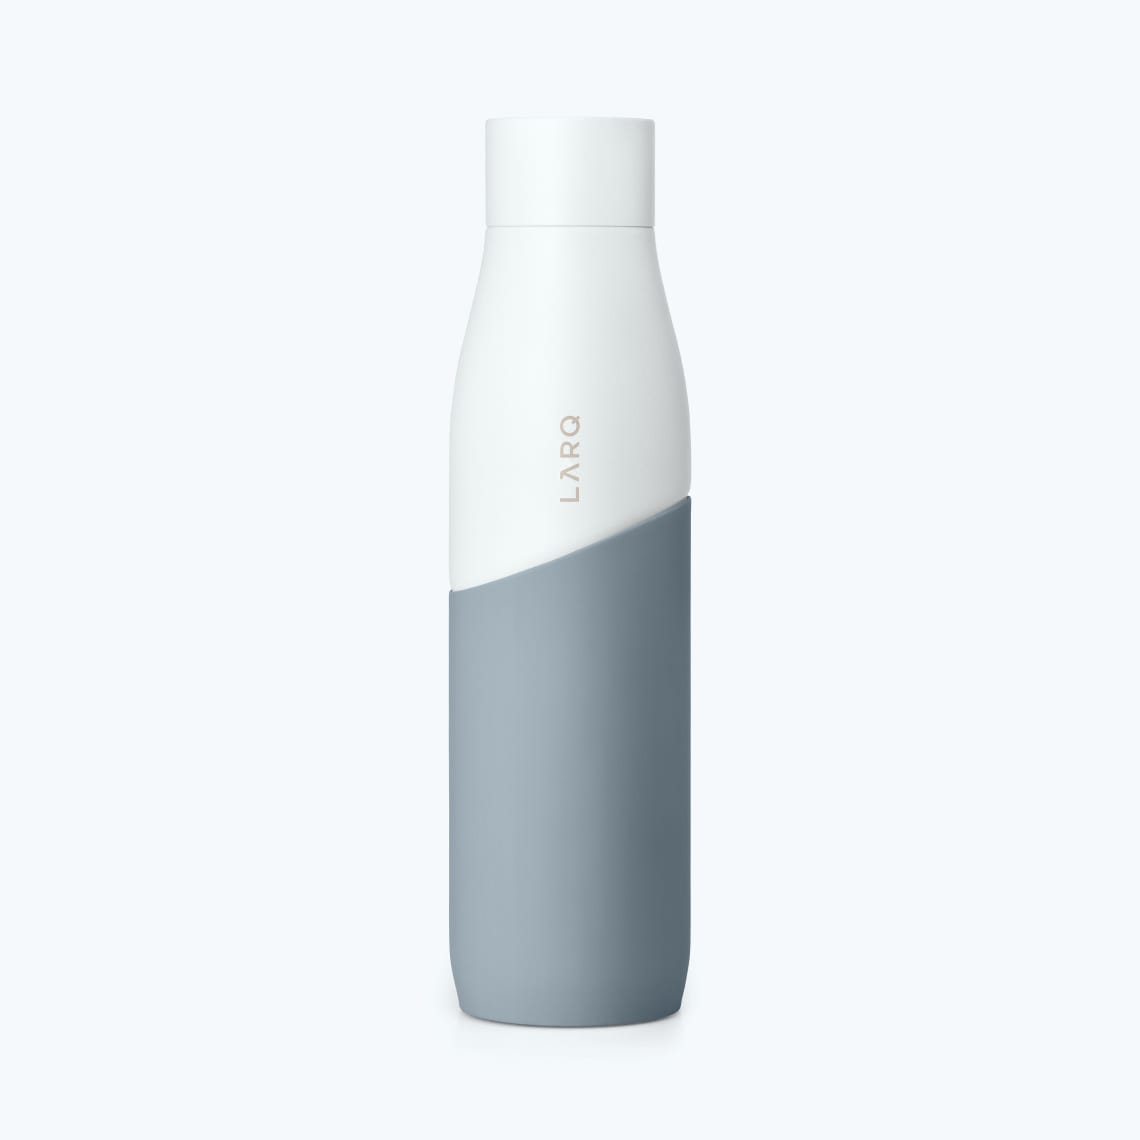 LARQ Bottle Movement PureVis™ White / Pebble secondary